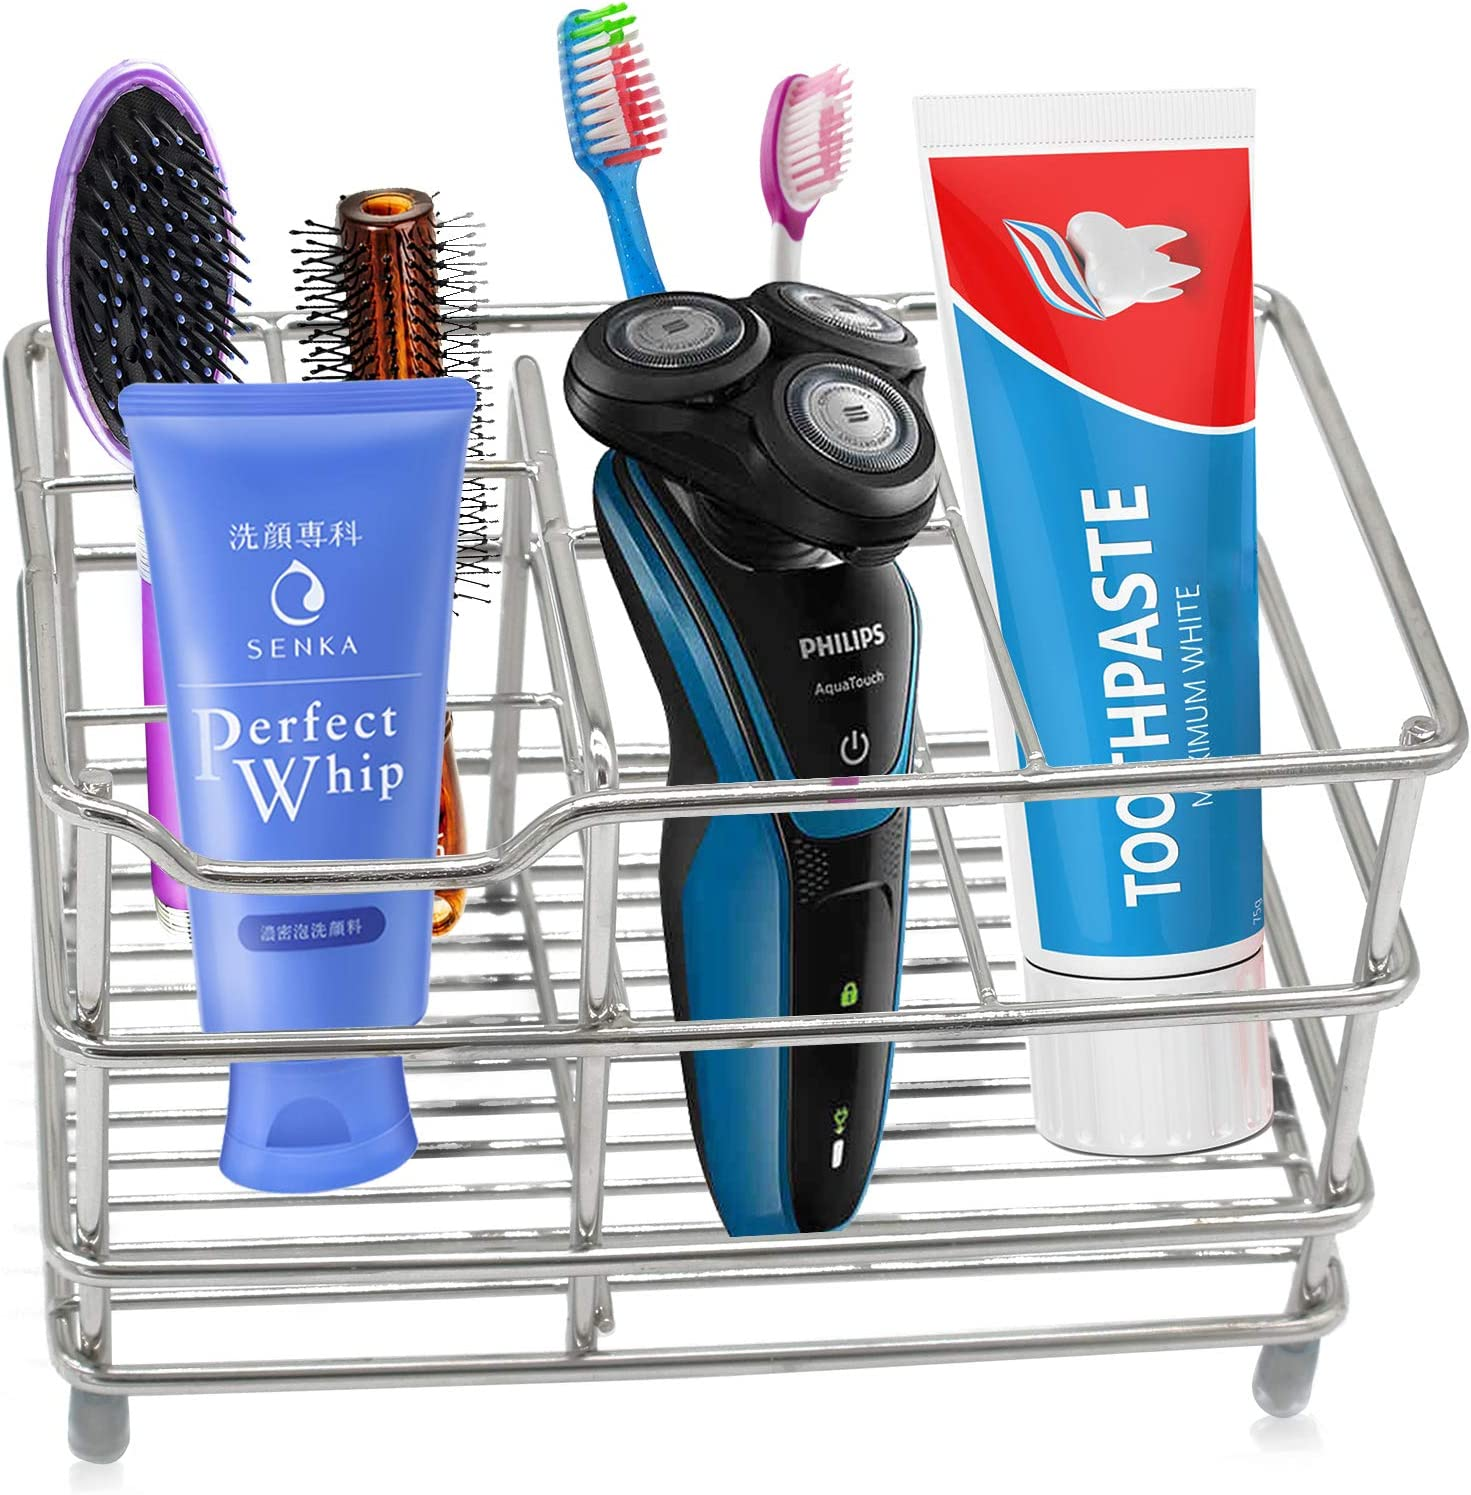 Electric Toothbrush Holder Toothpaste Holder Stand,Stainless Steel Bathroom Storage Organizer Stand Rack Multi Functional 6 Slots for Large Powered